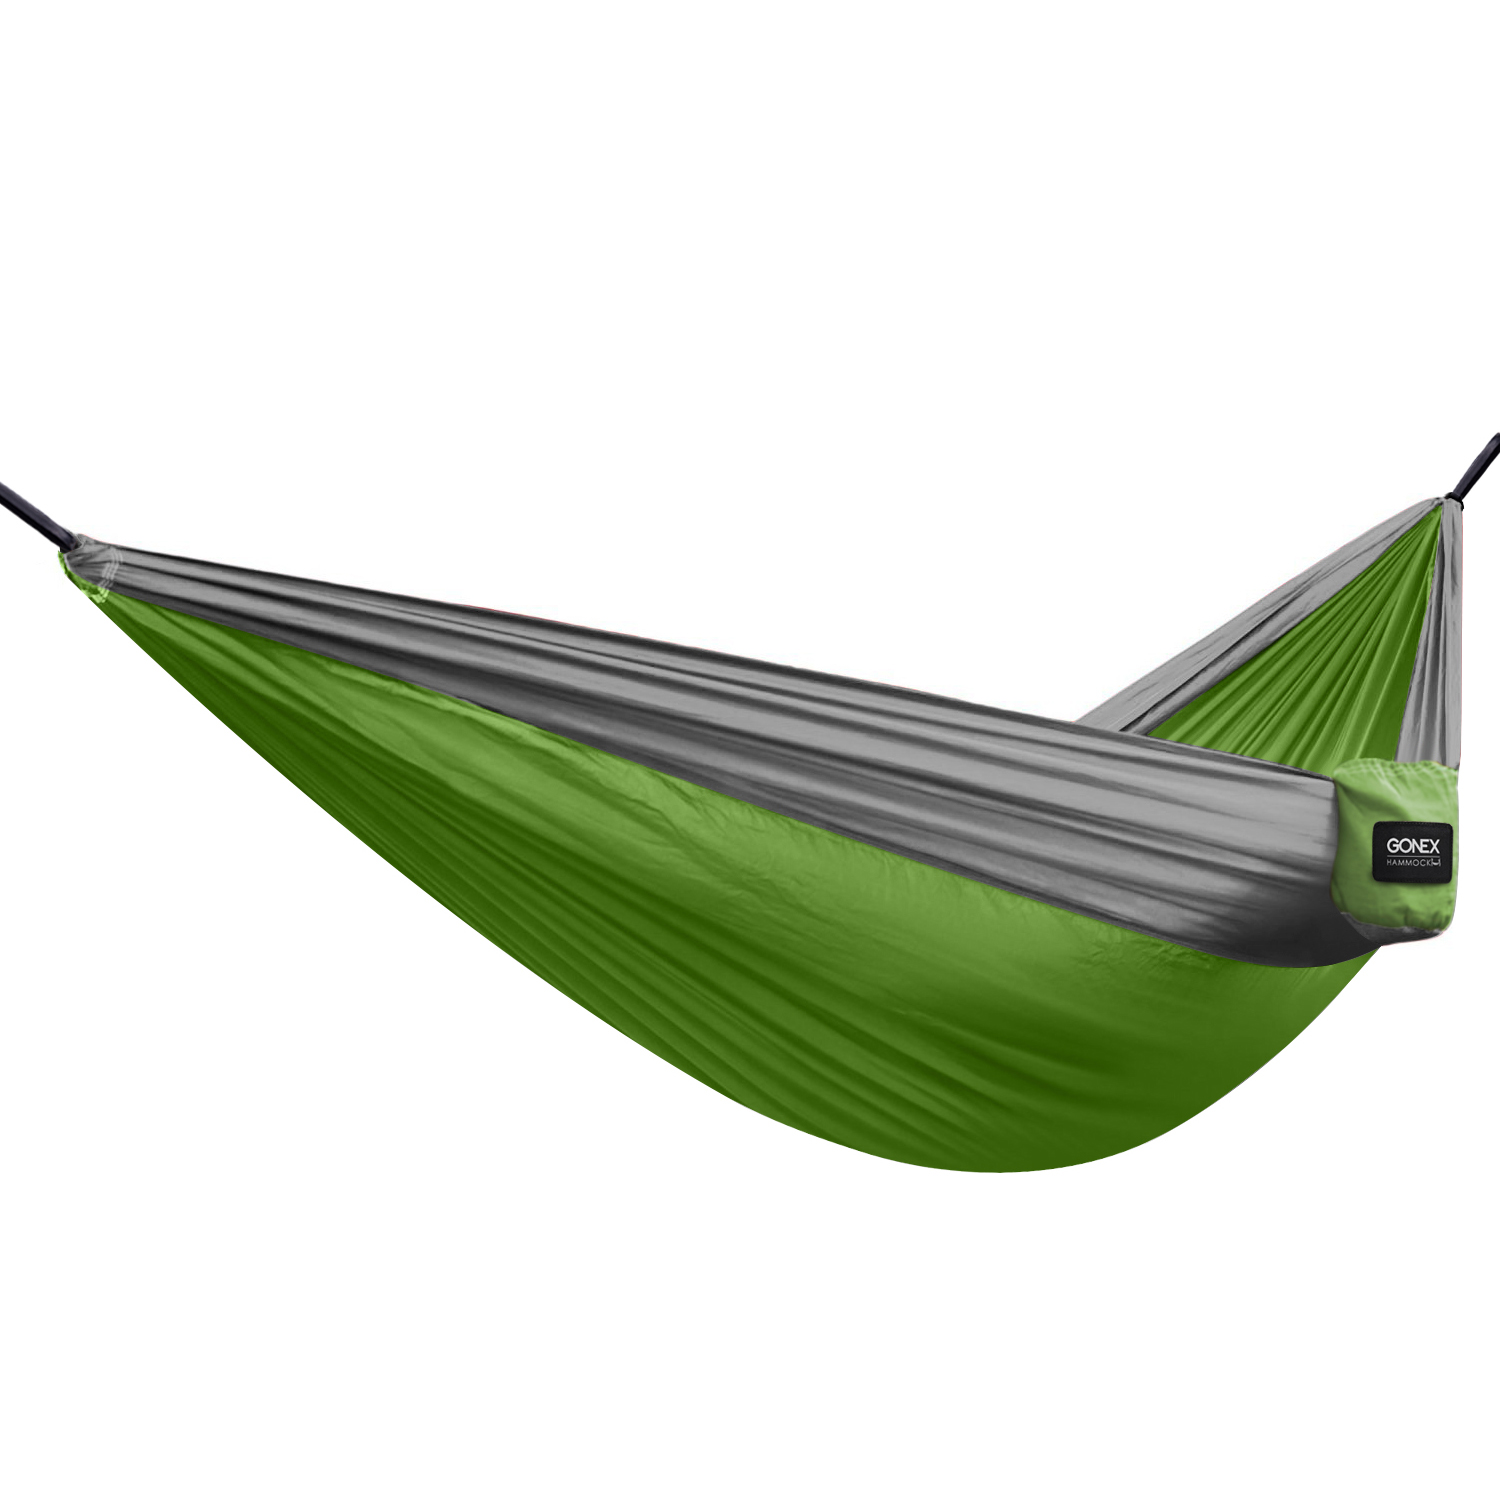 Double Hammock 2 Person Swing Patio Bed Cotton Rope